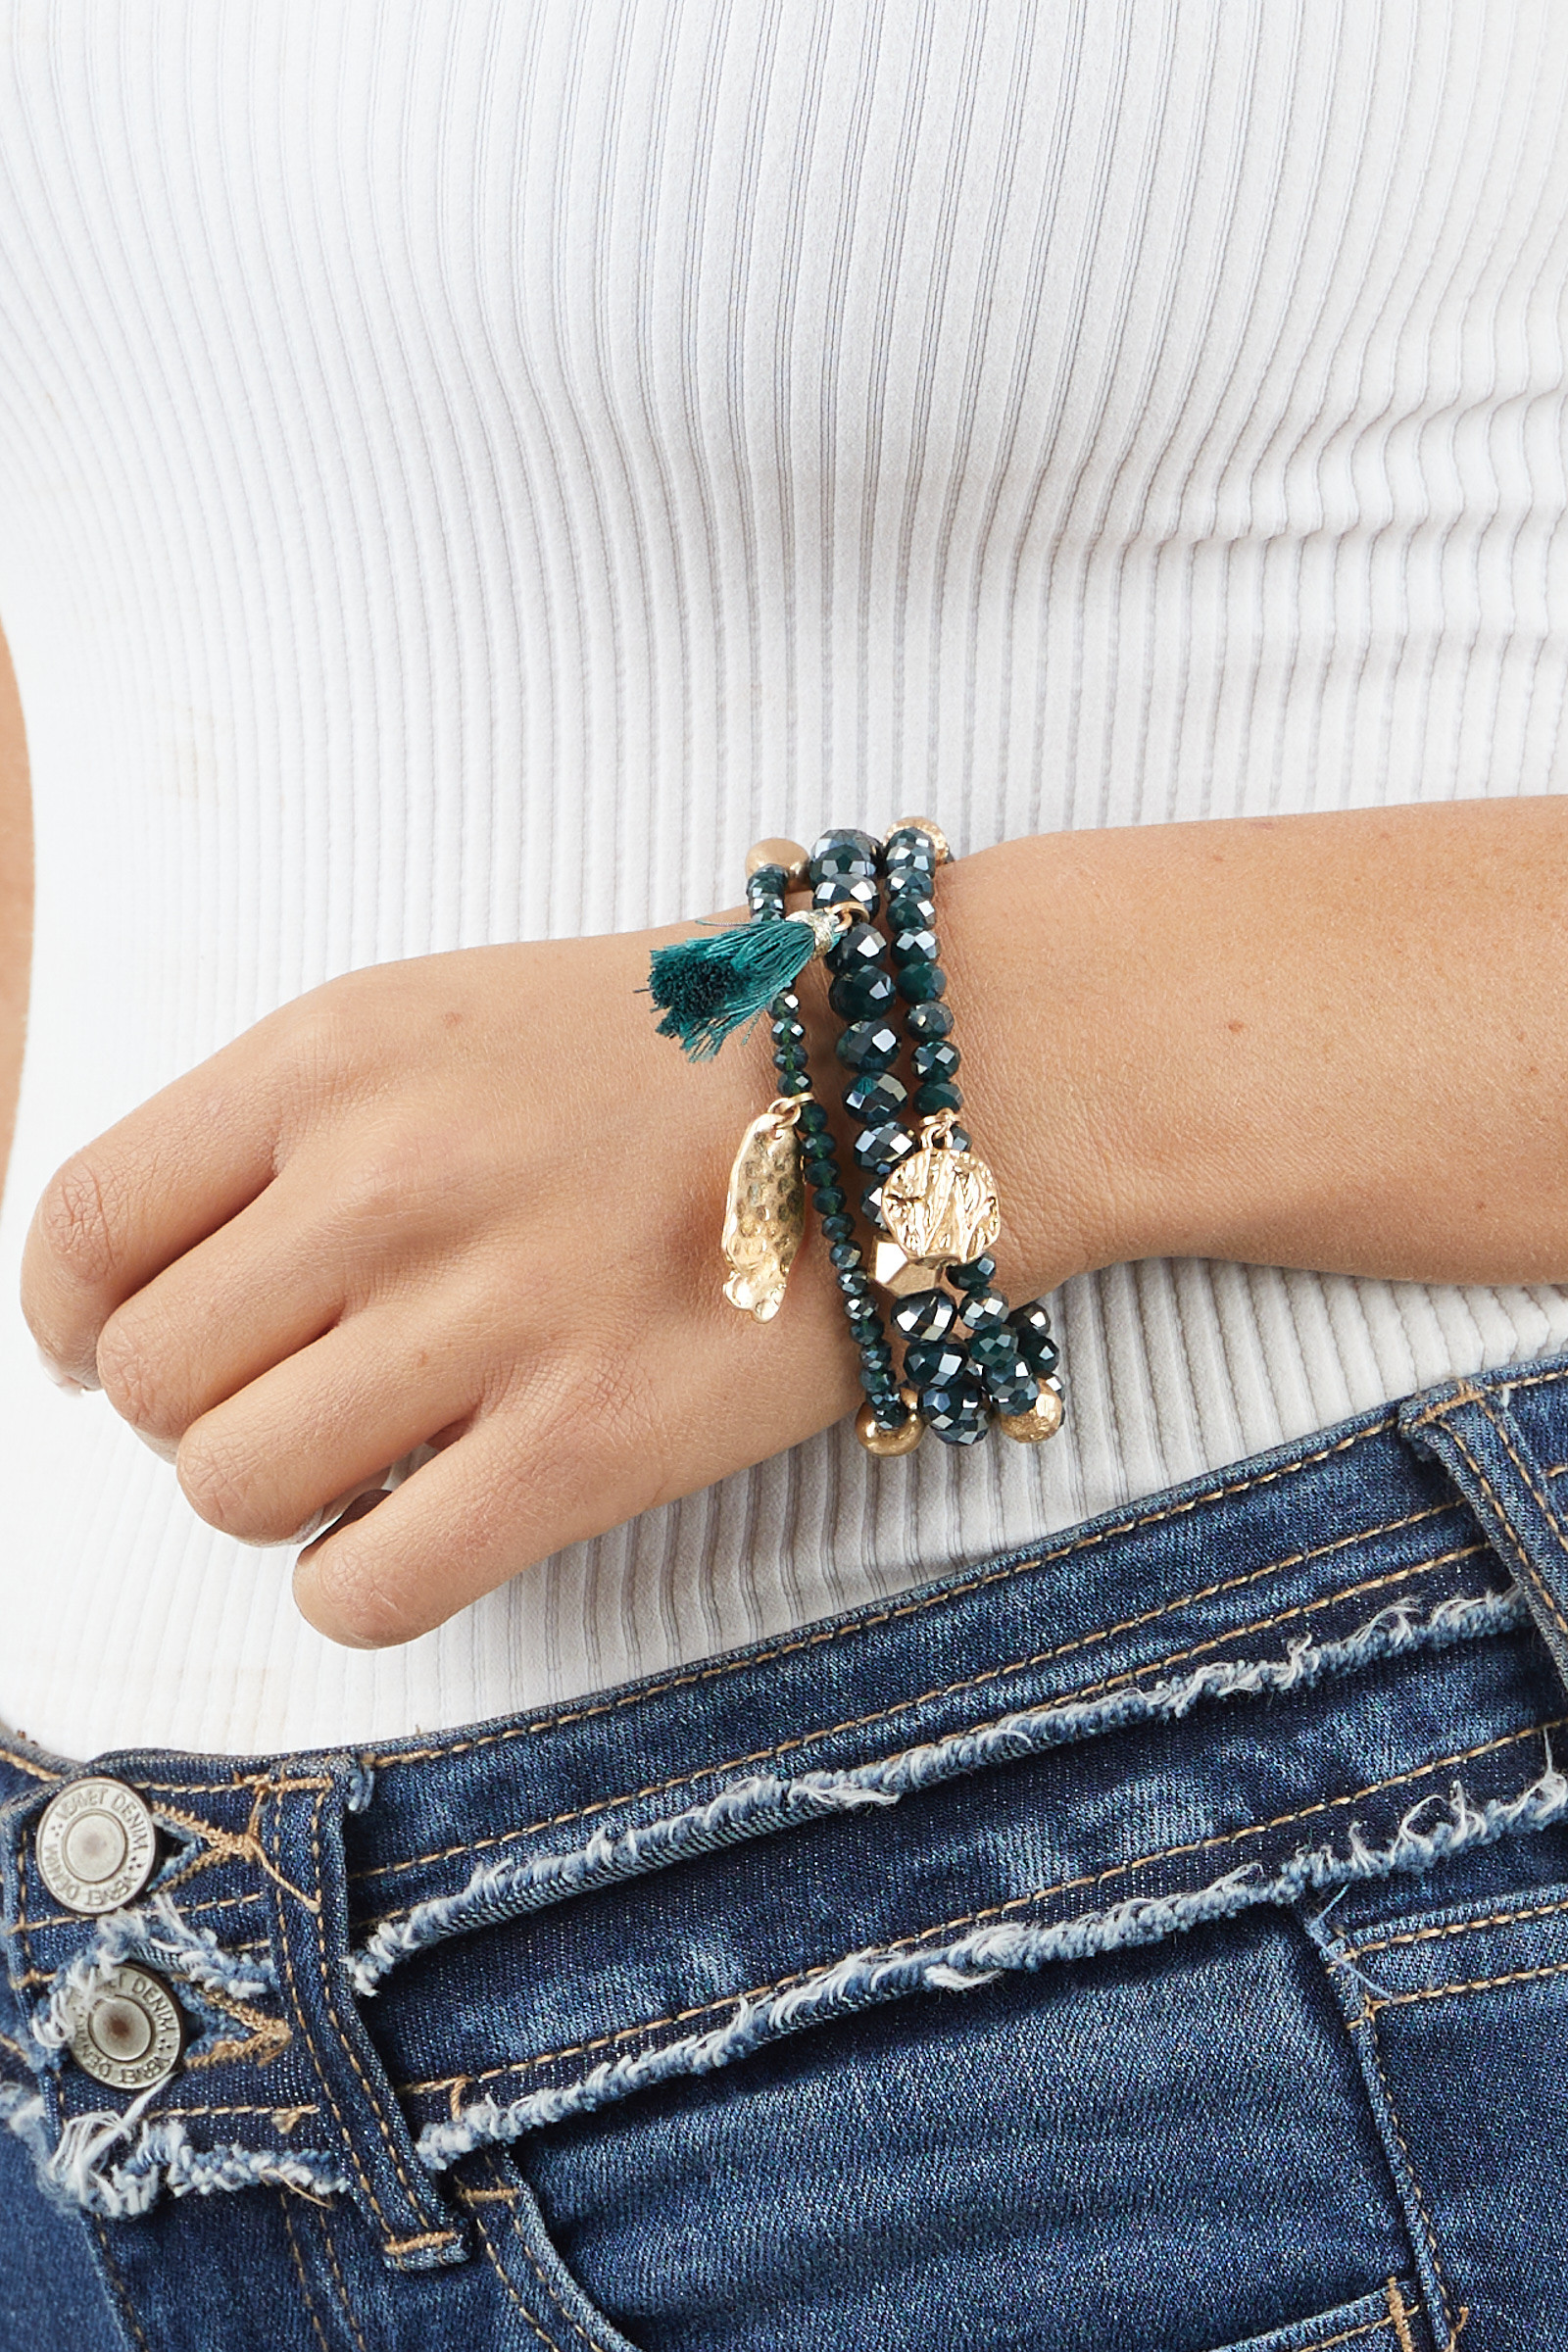 Teal and Gold Beaded Bracelet Set with Tassel and Charms